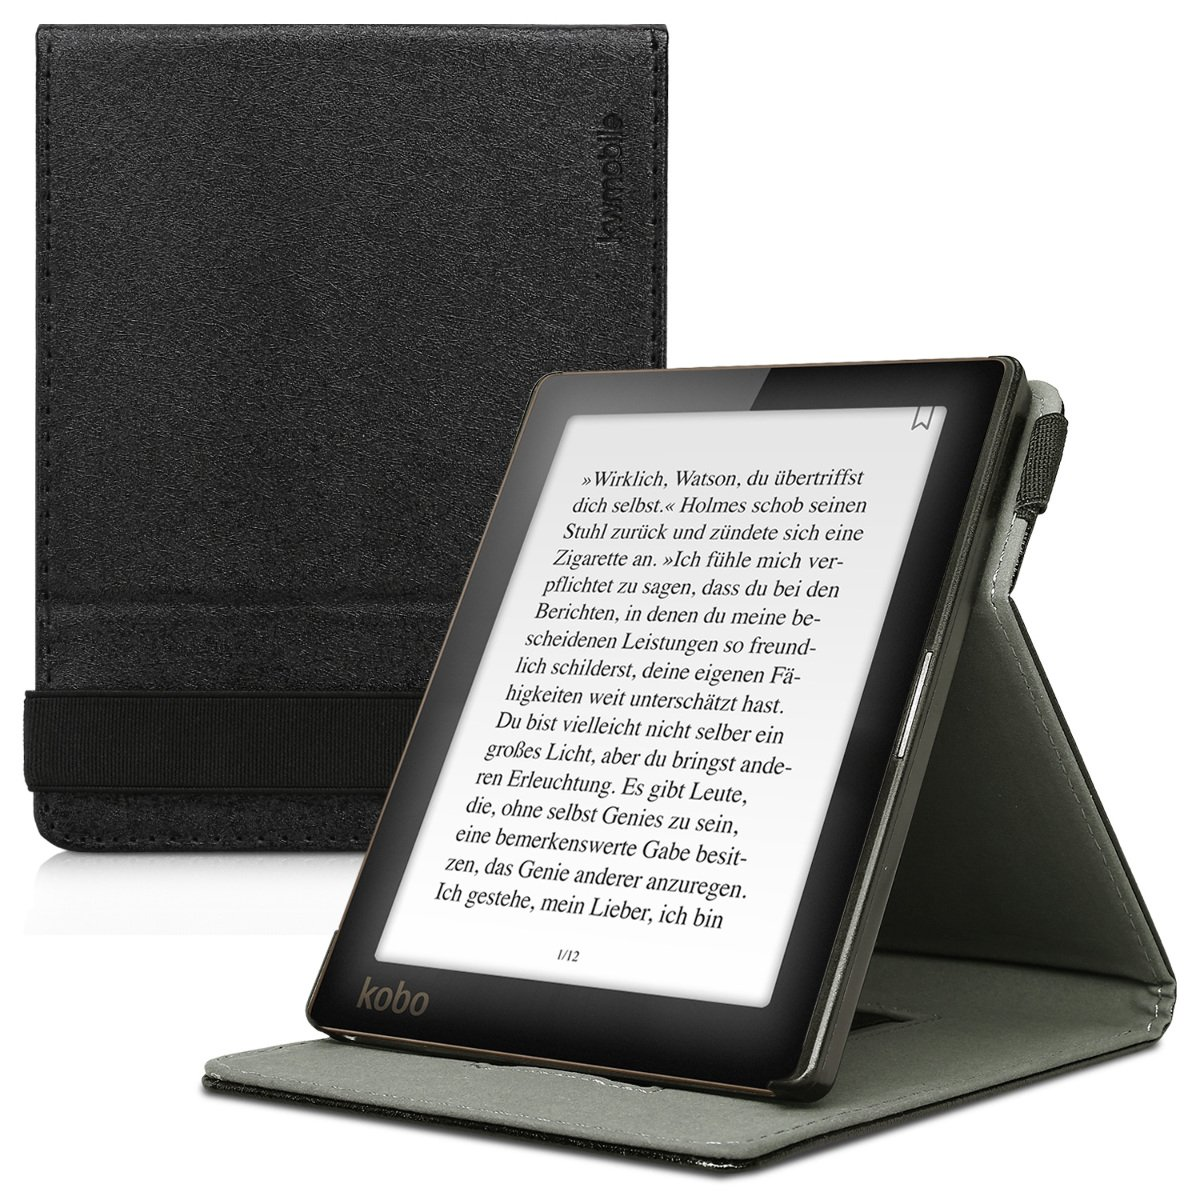 kwmobile Cover for Kobo Aura Edition 1 - PU Leather e-Reader Case with Built-in Hand Strap and Stand - Black KW-Commerce 45101.01_m000271